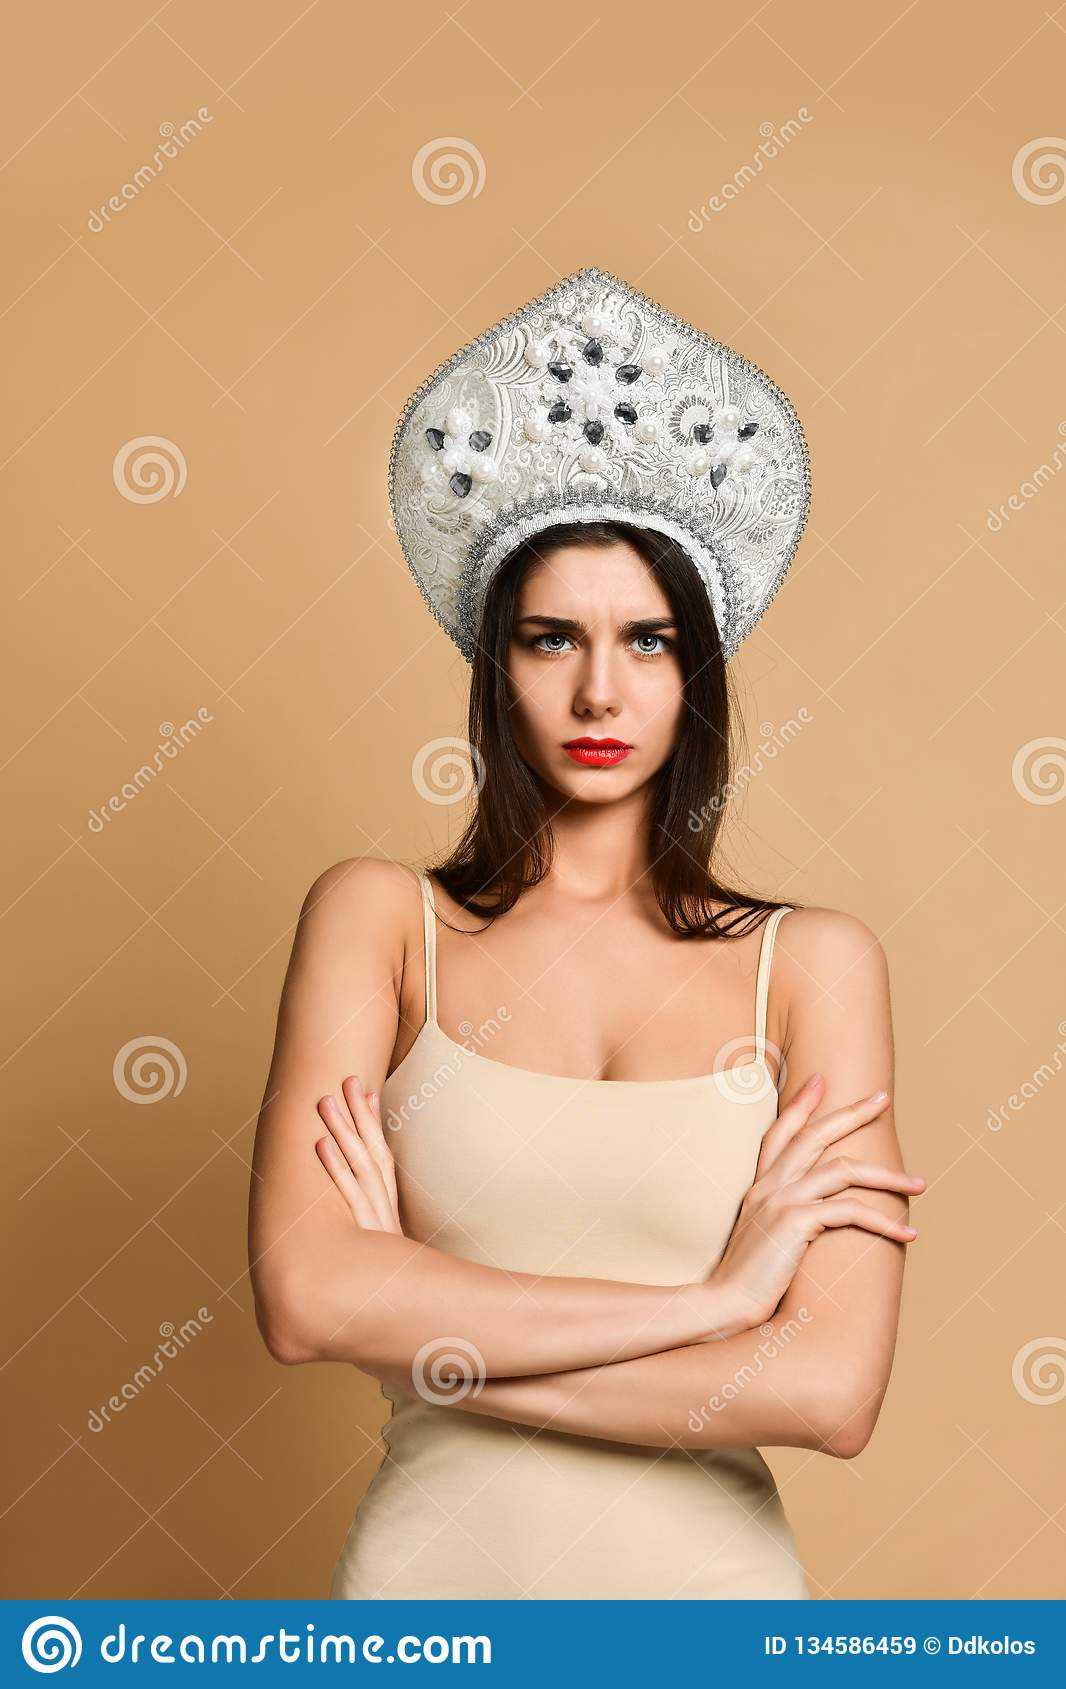 Unabashed and free to be herself   Buy Stock Photo on